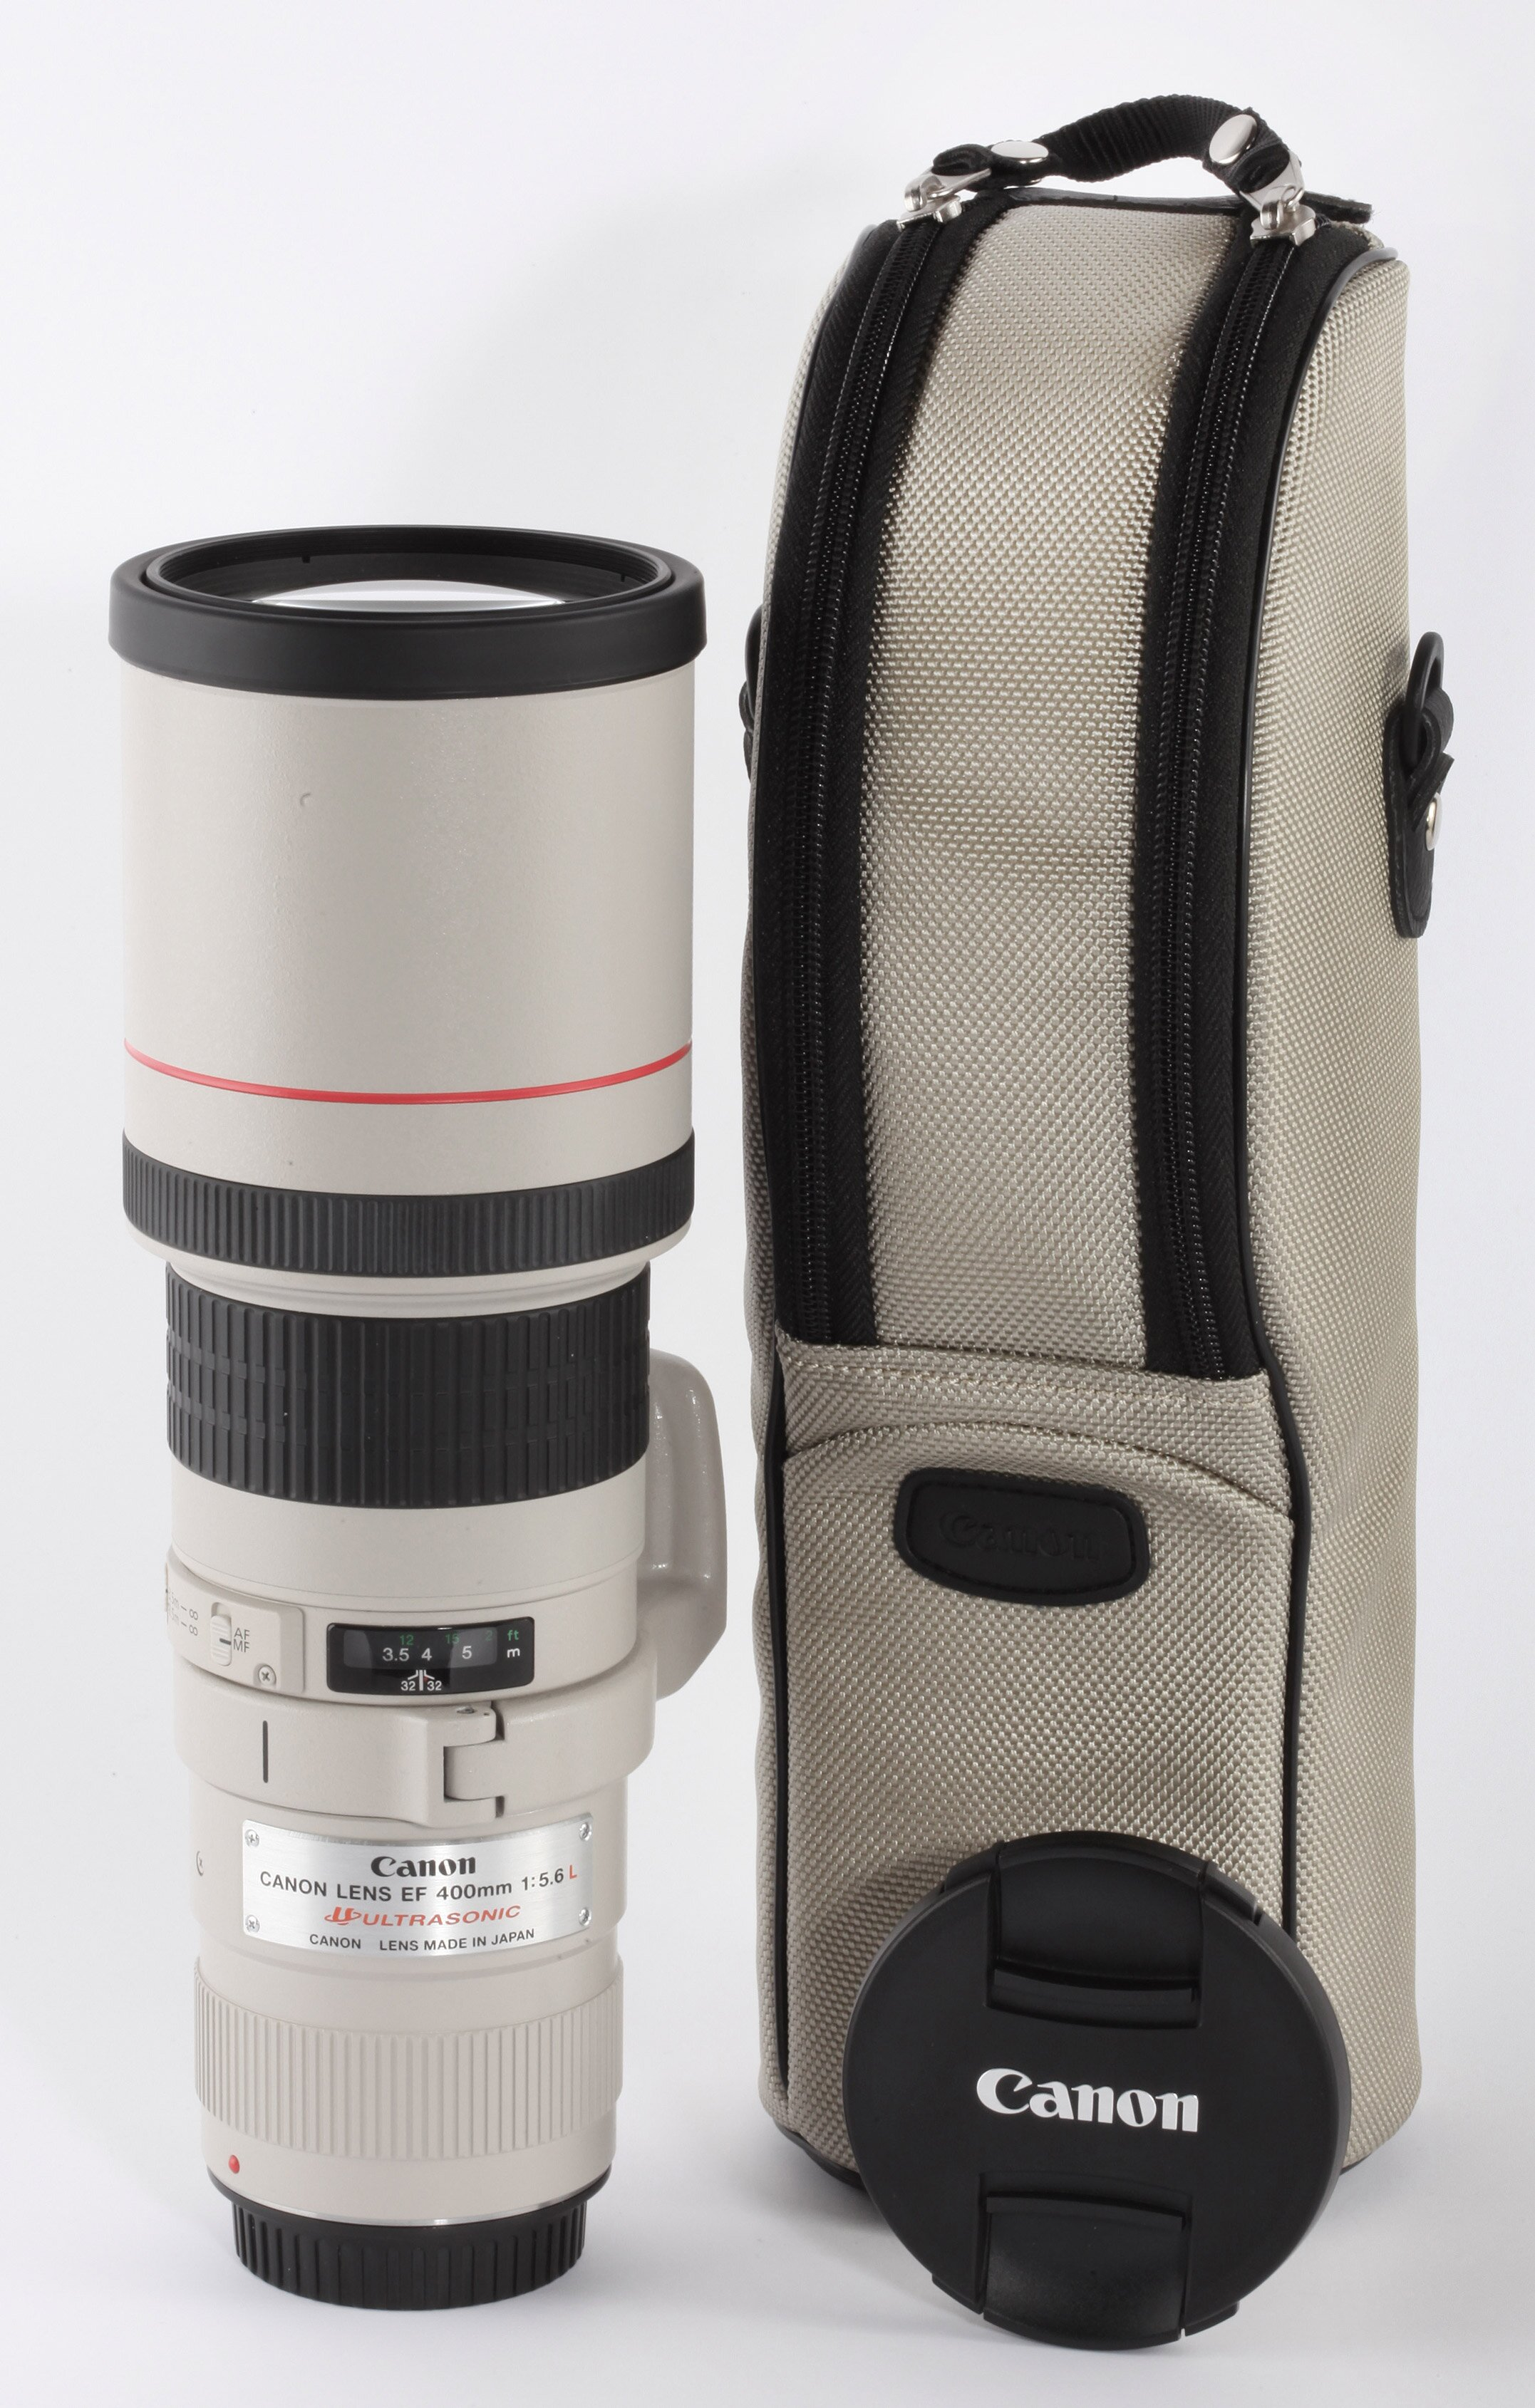 Canon EF 400mm 5,6 L IS USM